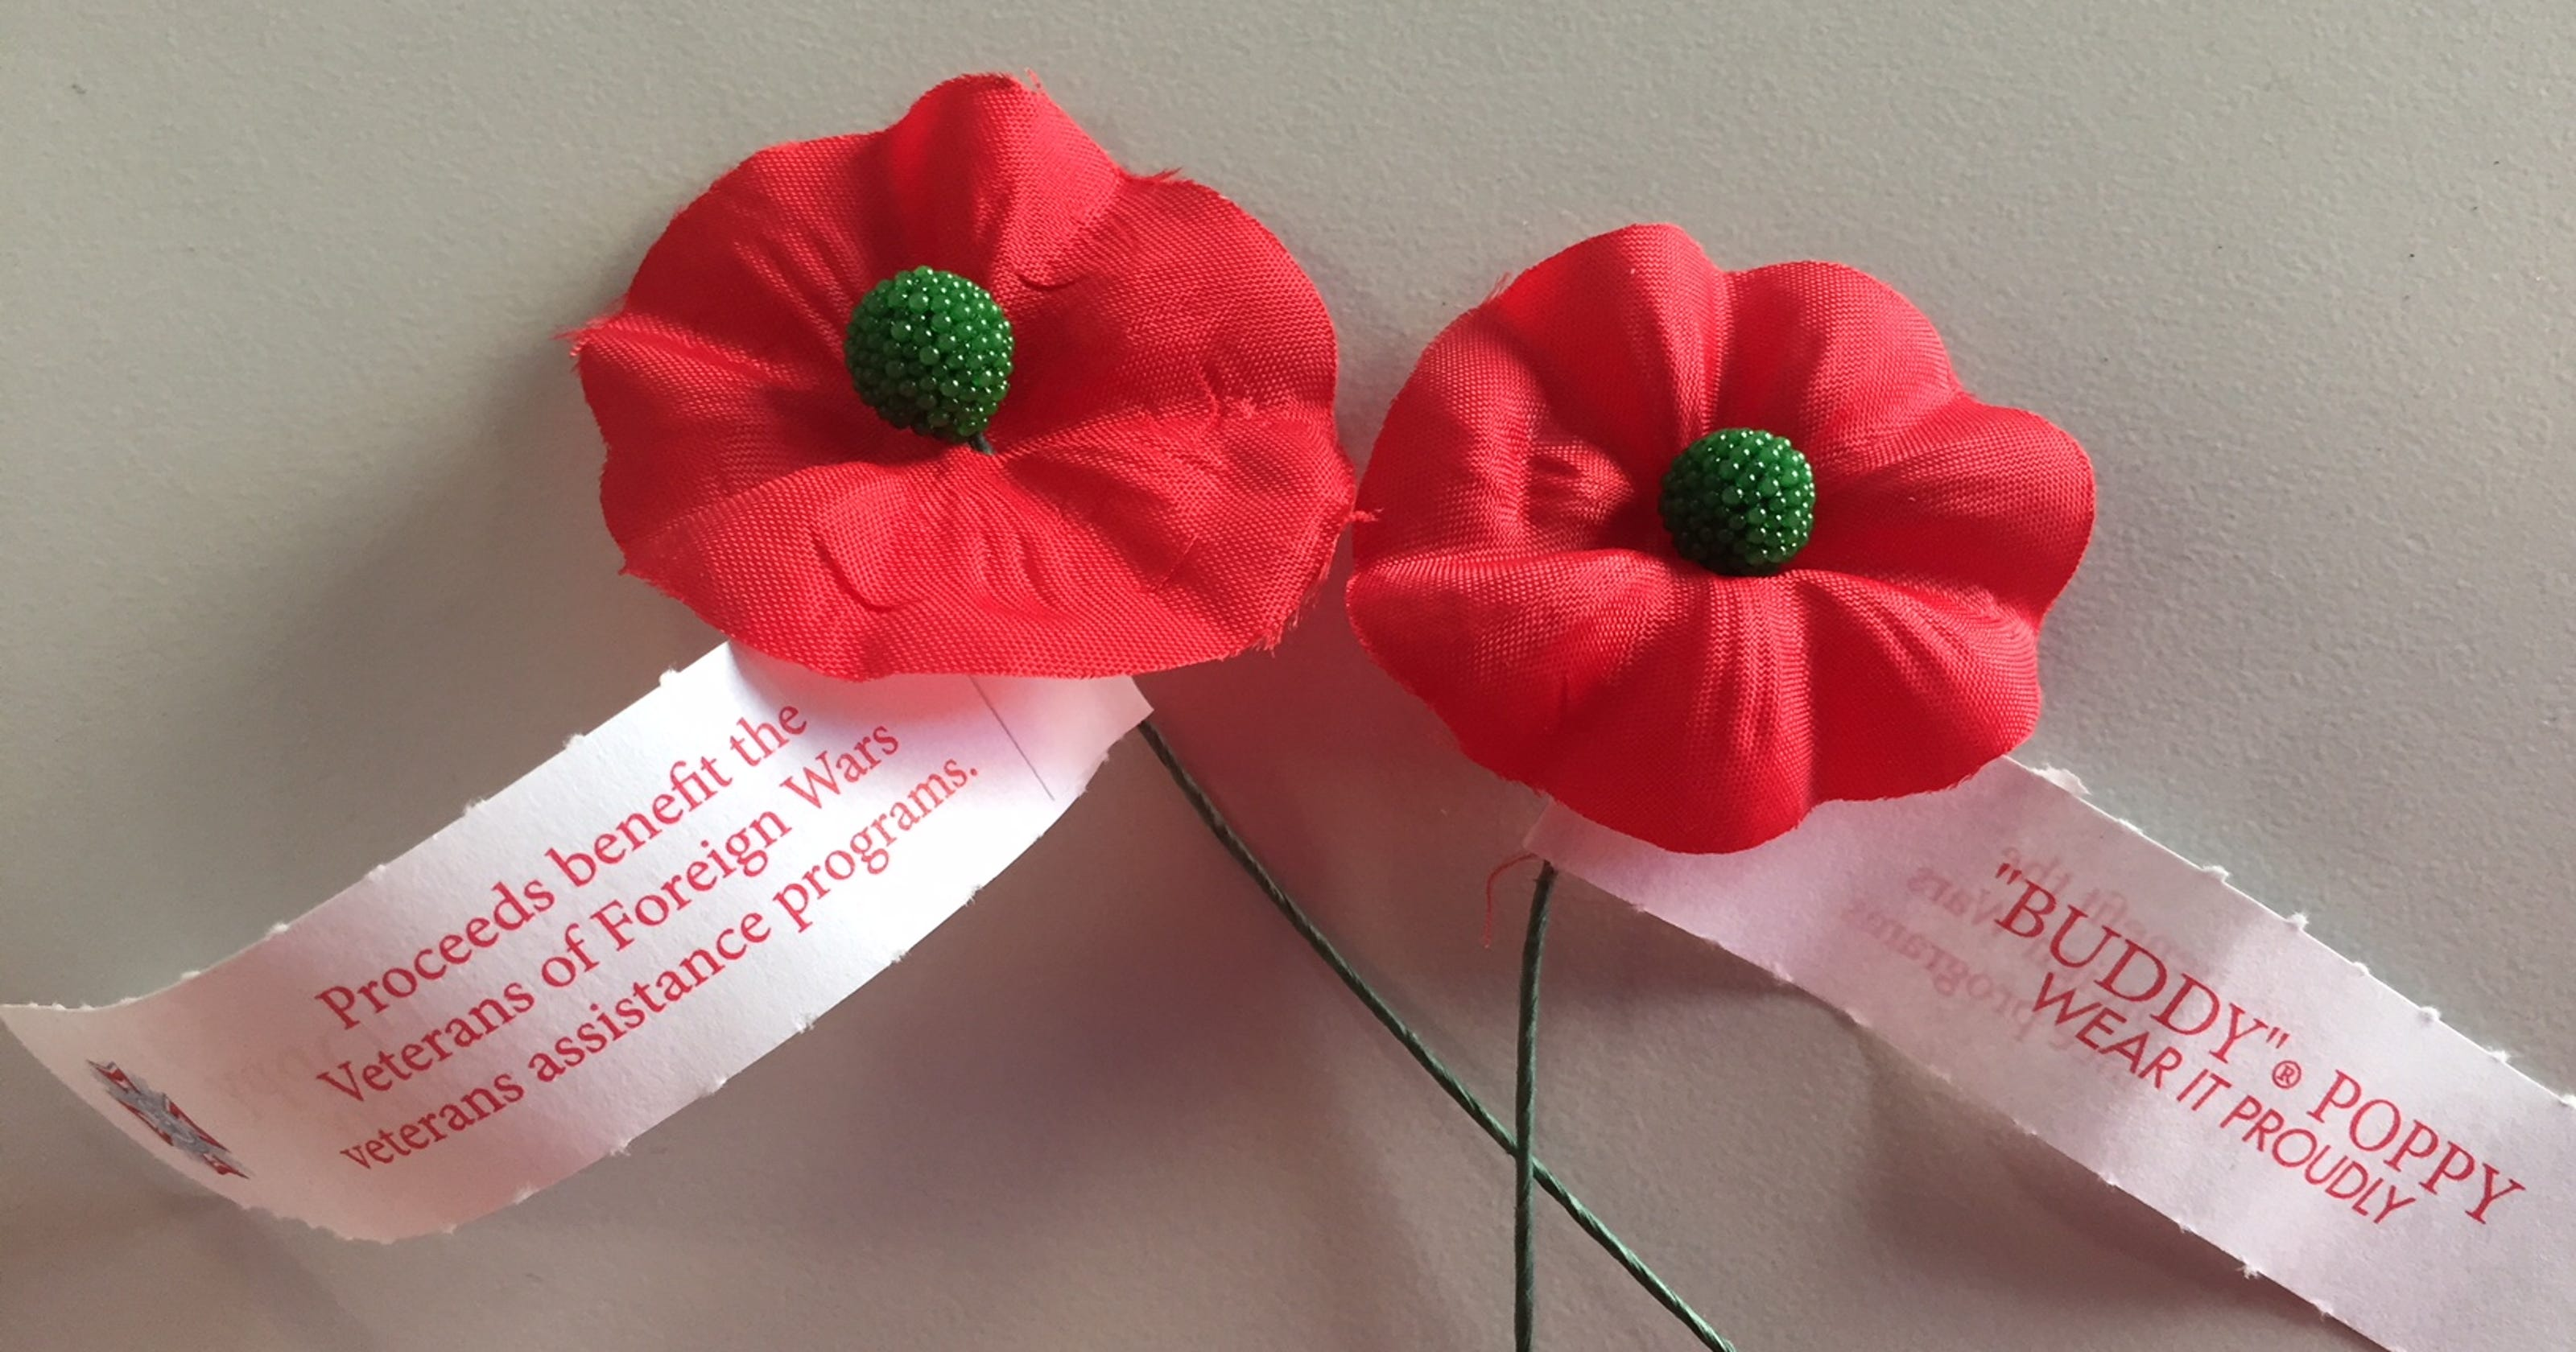 Red poppies remind us to remember veterans' sacrifice on ...